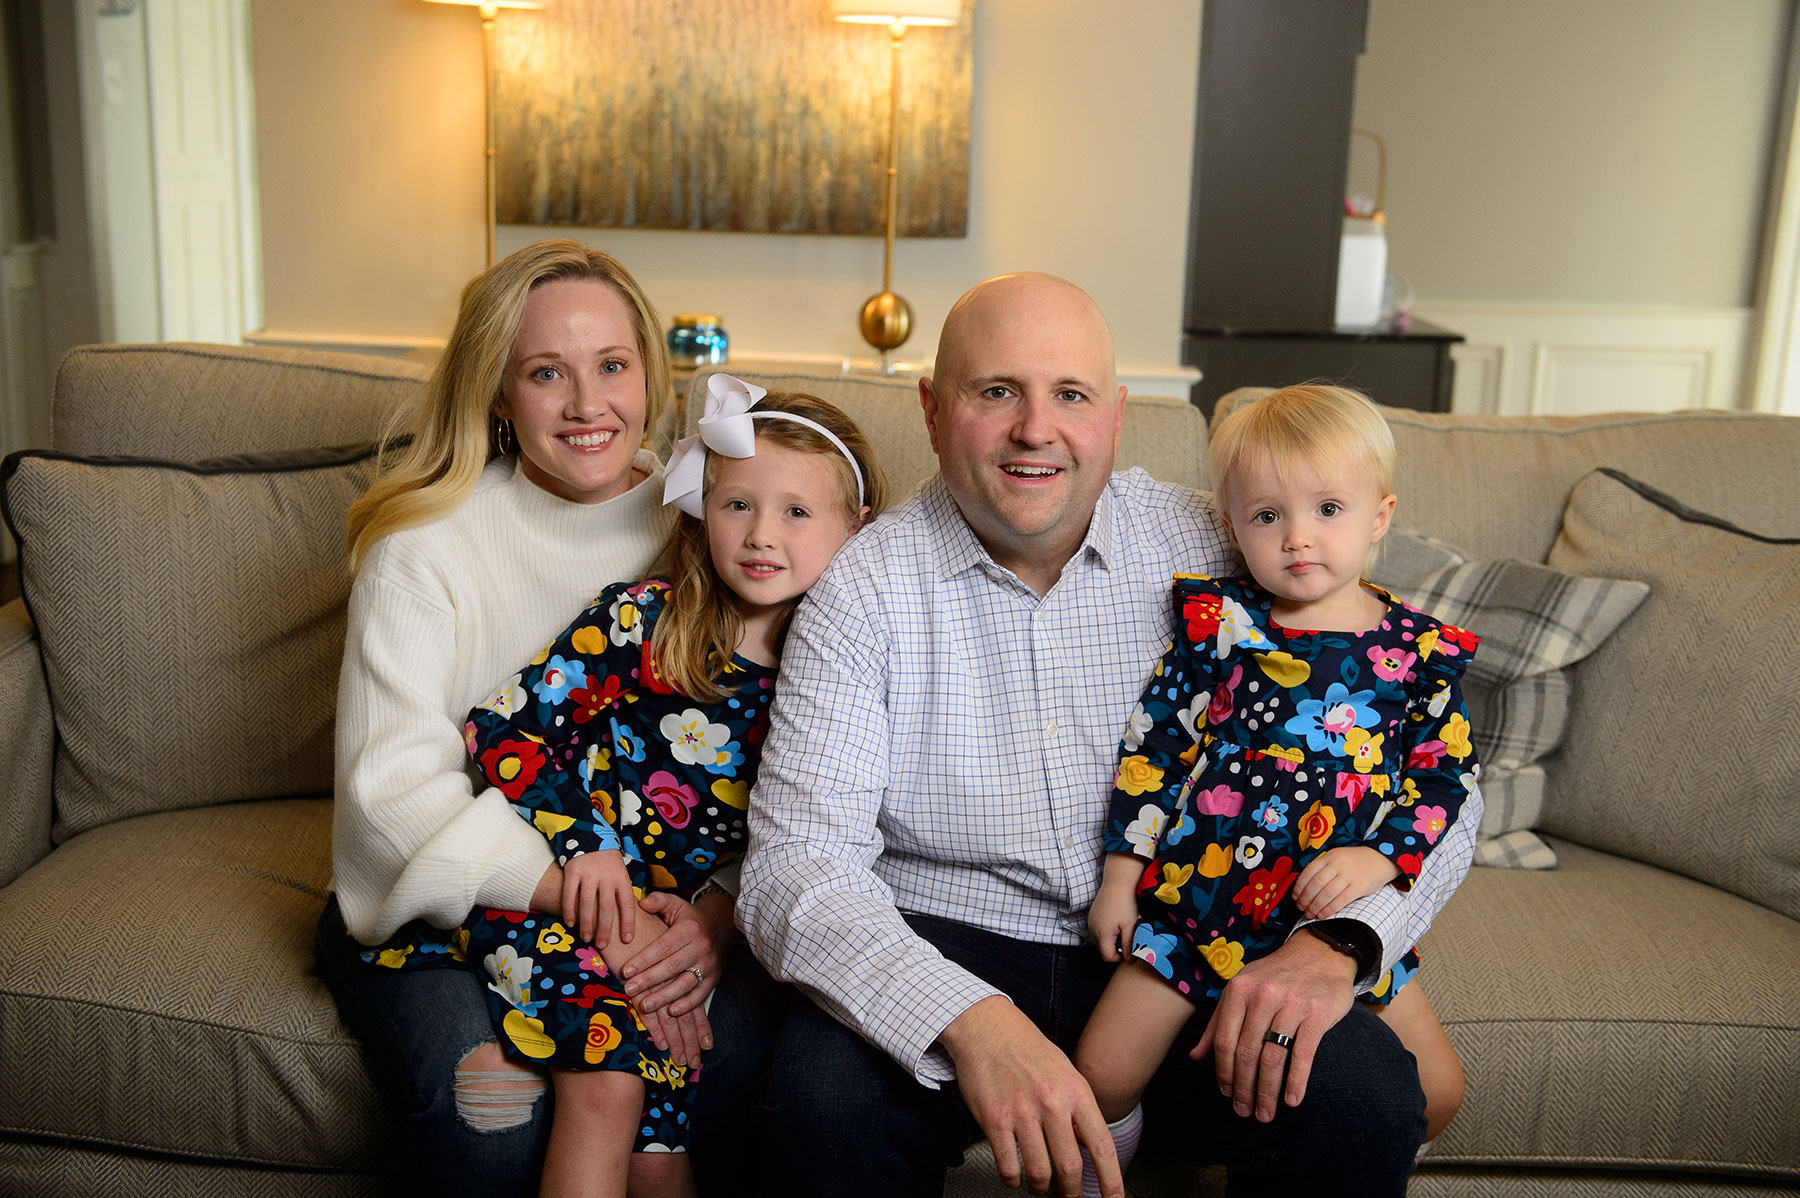 Dr. Adkins and his wife and two little girls smile for a family photo on the couch.